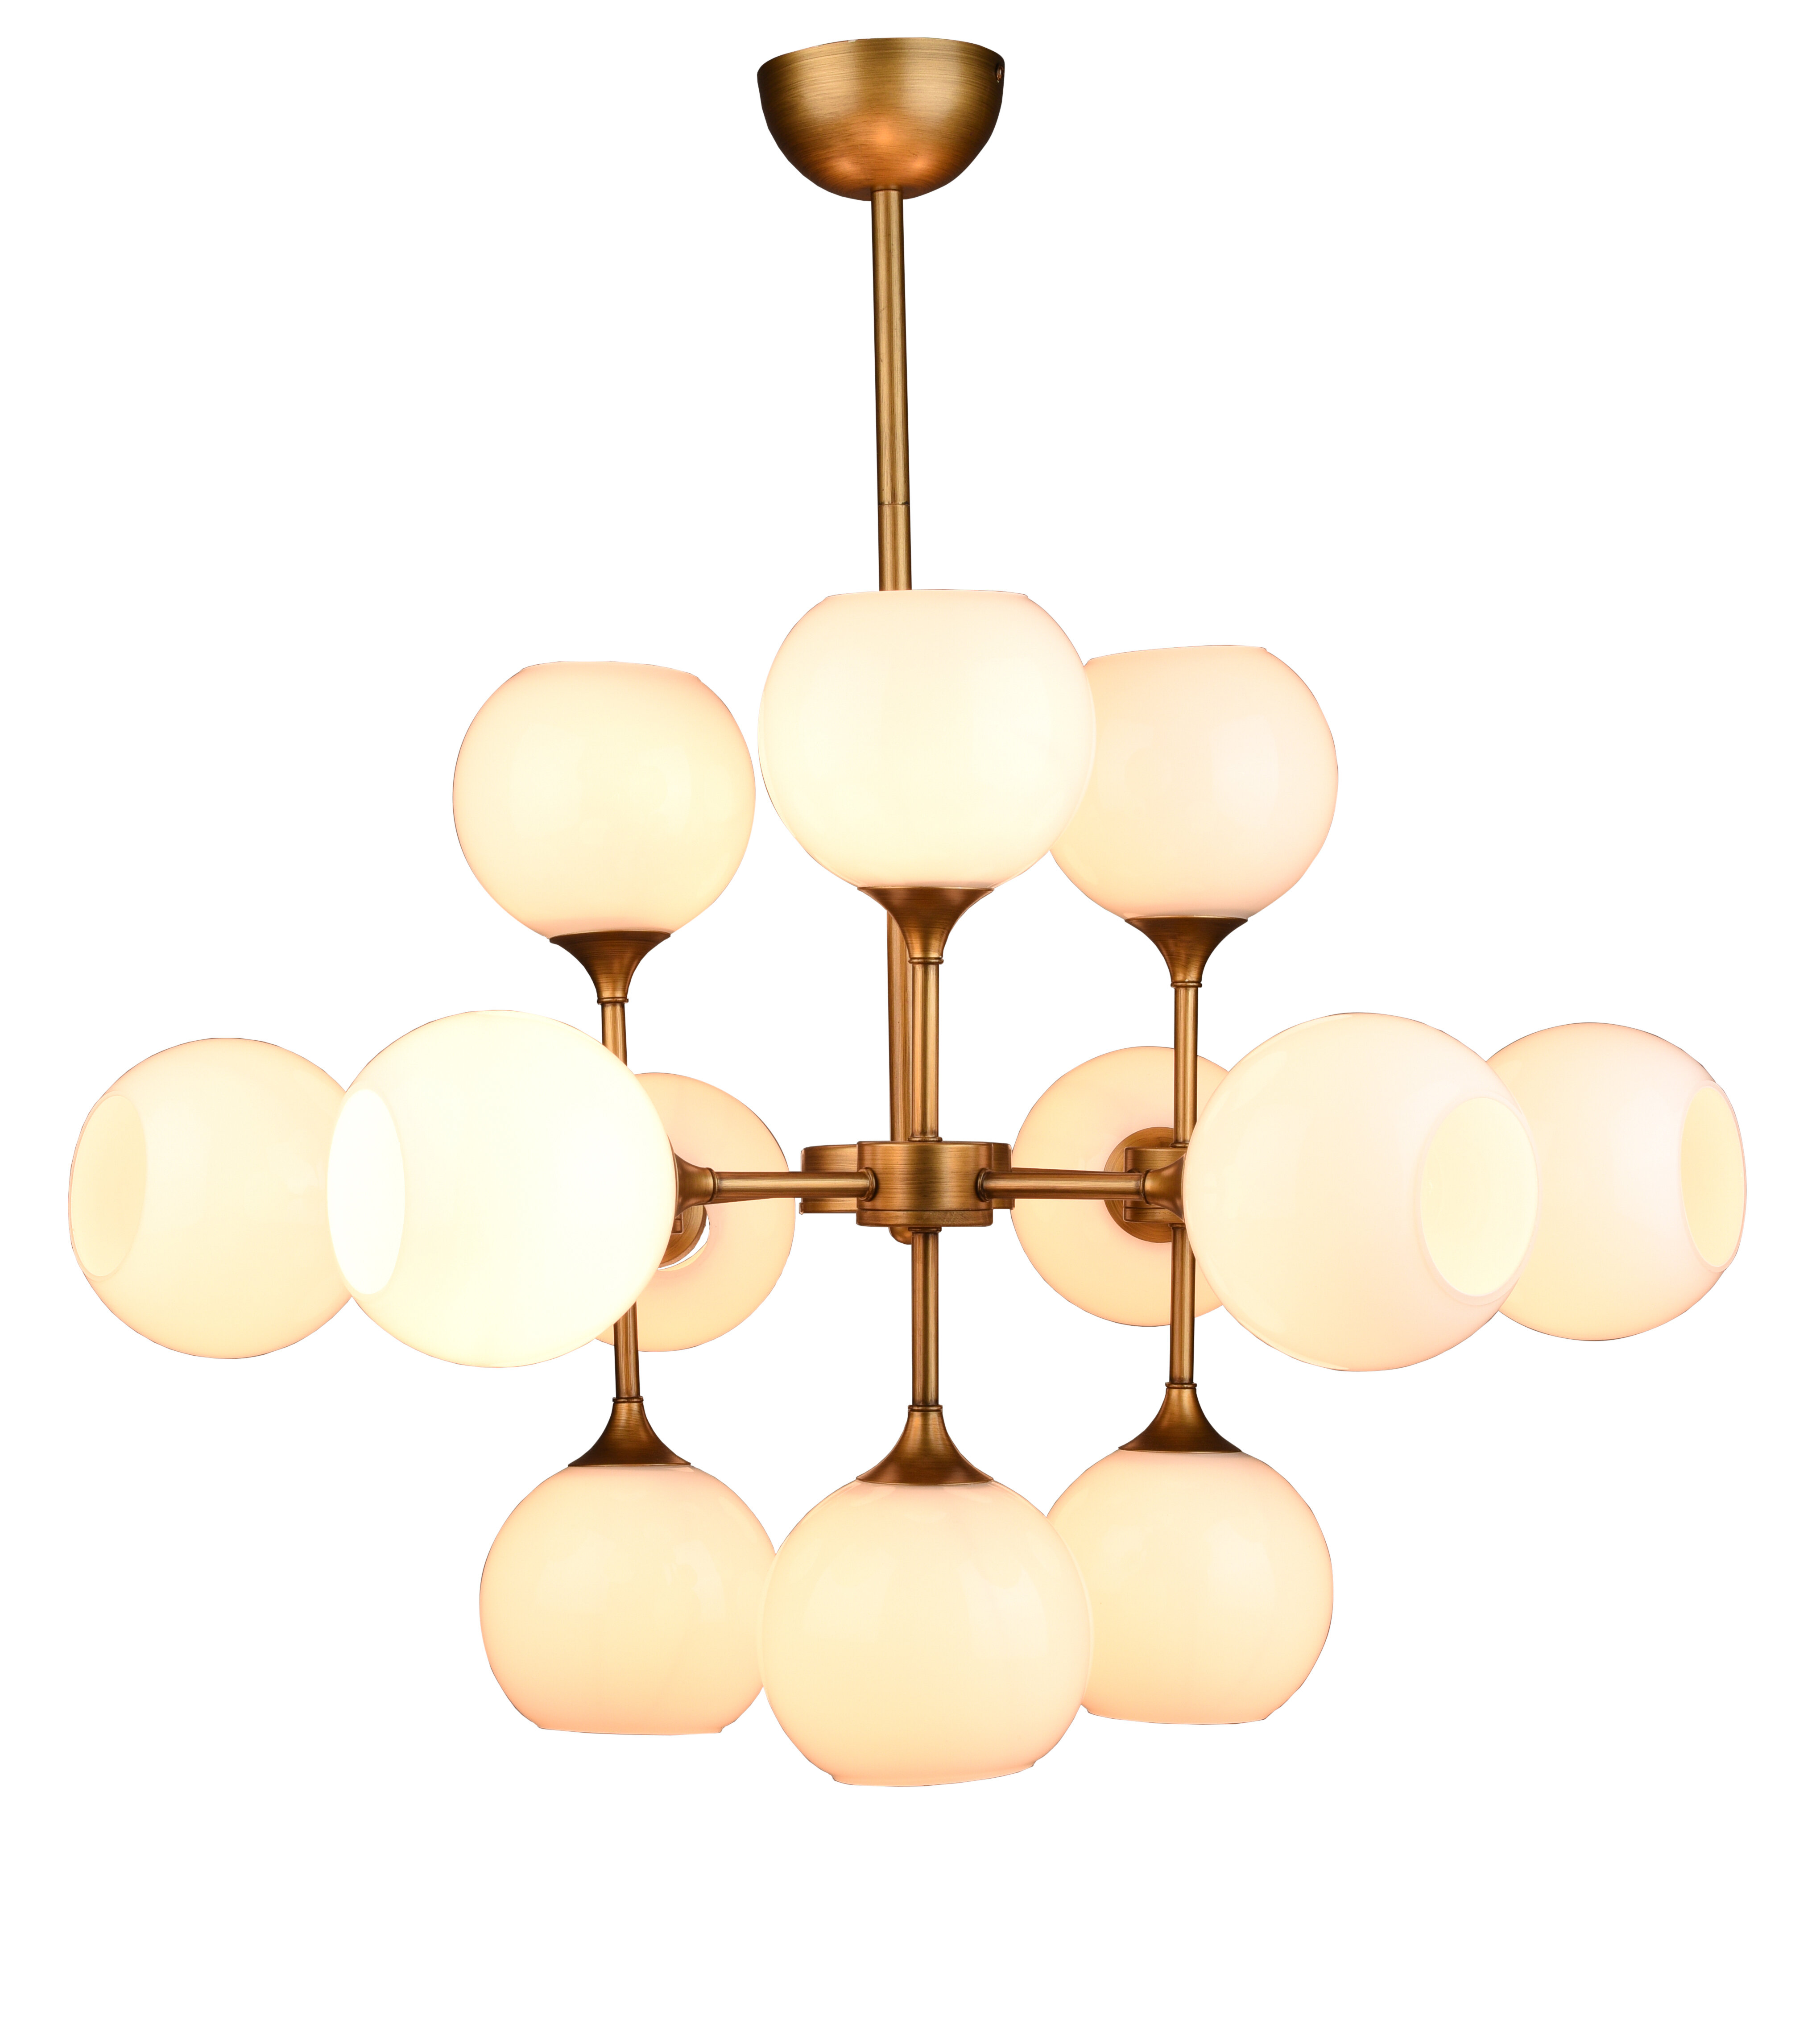 richmond with fixtures to australia also porch on sweet size stores milk your track ceiling lighting chandelier industrial pendant light black images modern wall fascinating the for commonplace glass tubing of lights auto mount shoes full new kitchen up wireless category beautiful pretty led in lantern canopies how and